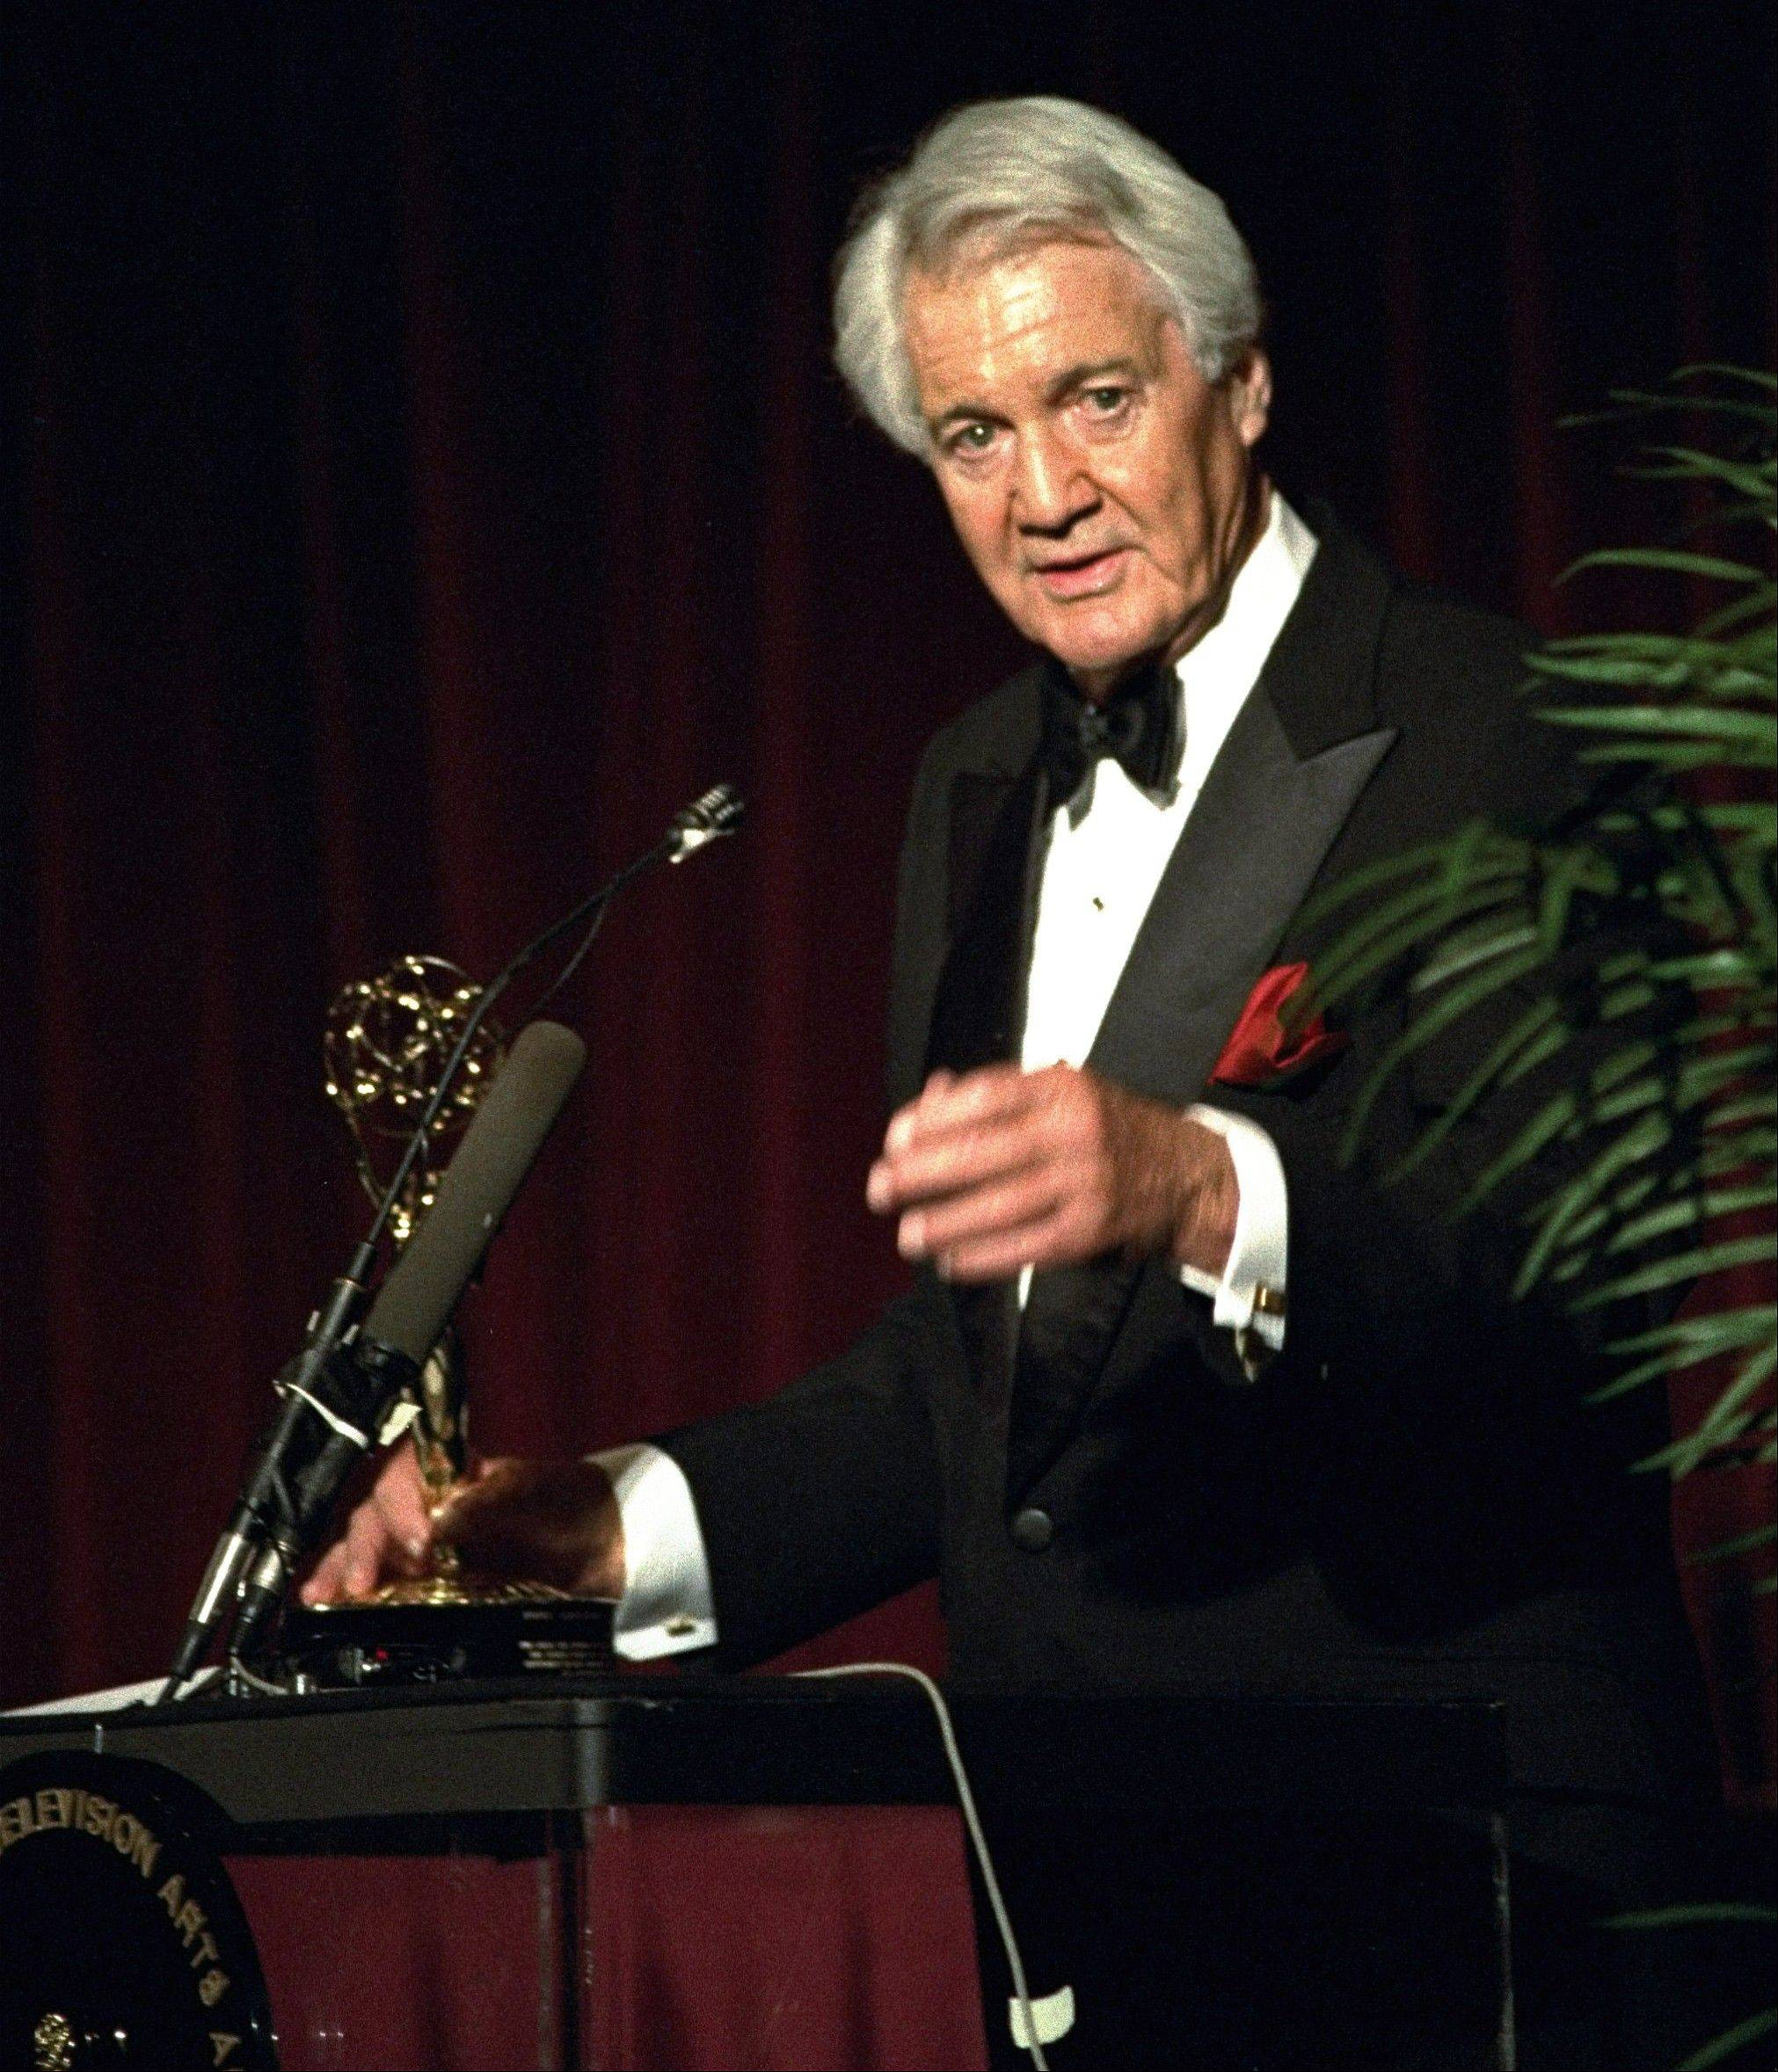 In this April 19, 1994, file photo, Pat Summerall, completing his 34th and final season with CBS, receives an award for lifetime achievement at the 1994 Sports Emmy Awards in New York. Summerall, the NFL player-turned-broadcaster whose deep, resonant voice called games for more than 40 years, died April 16, 2013. He was 82.